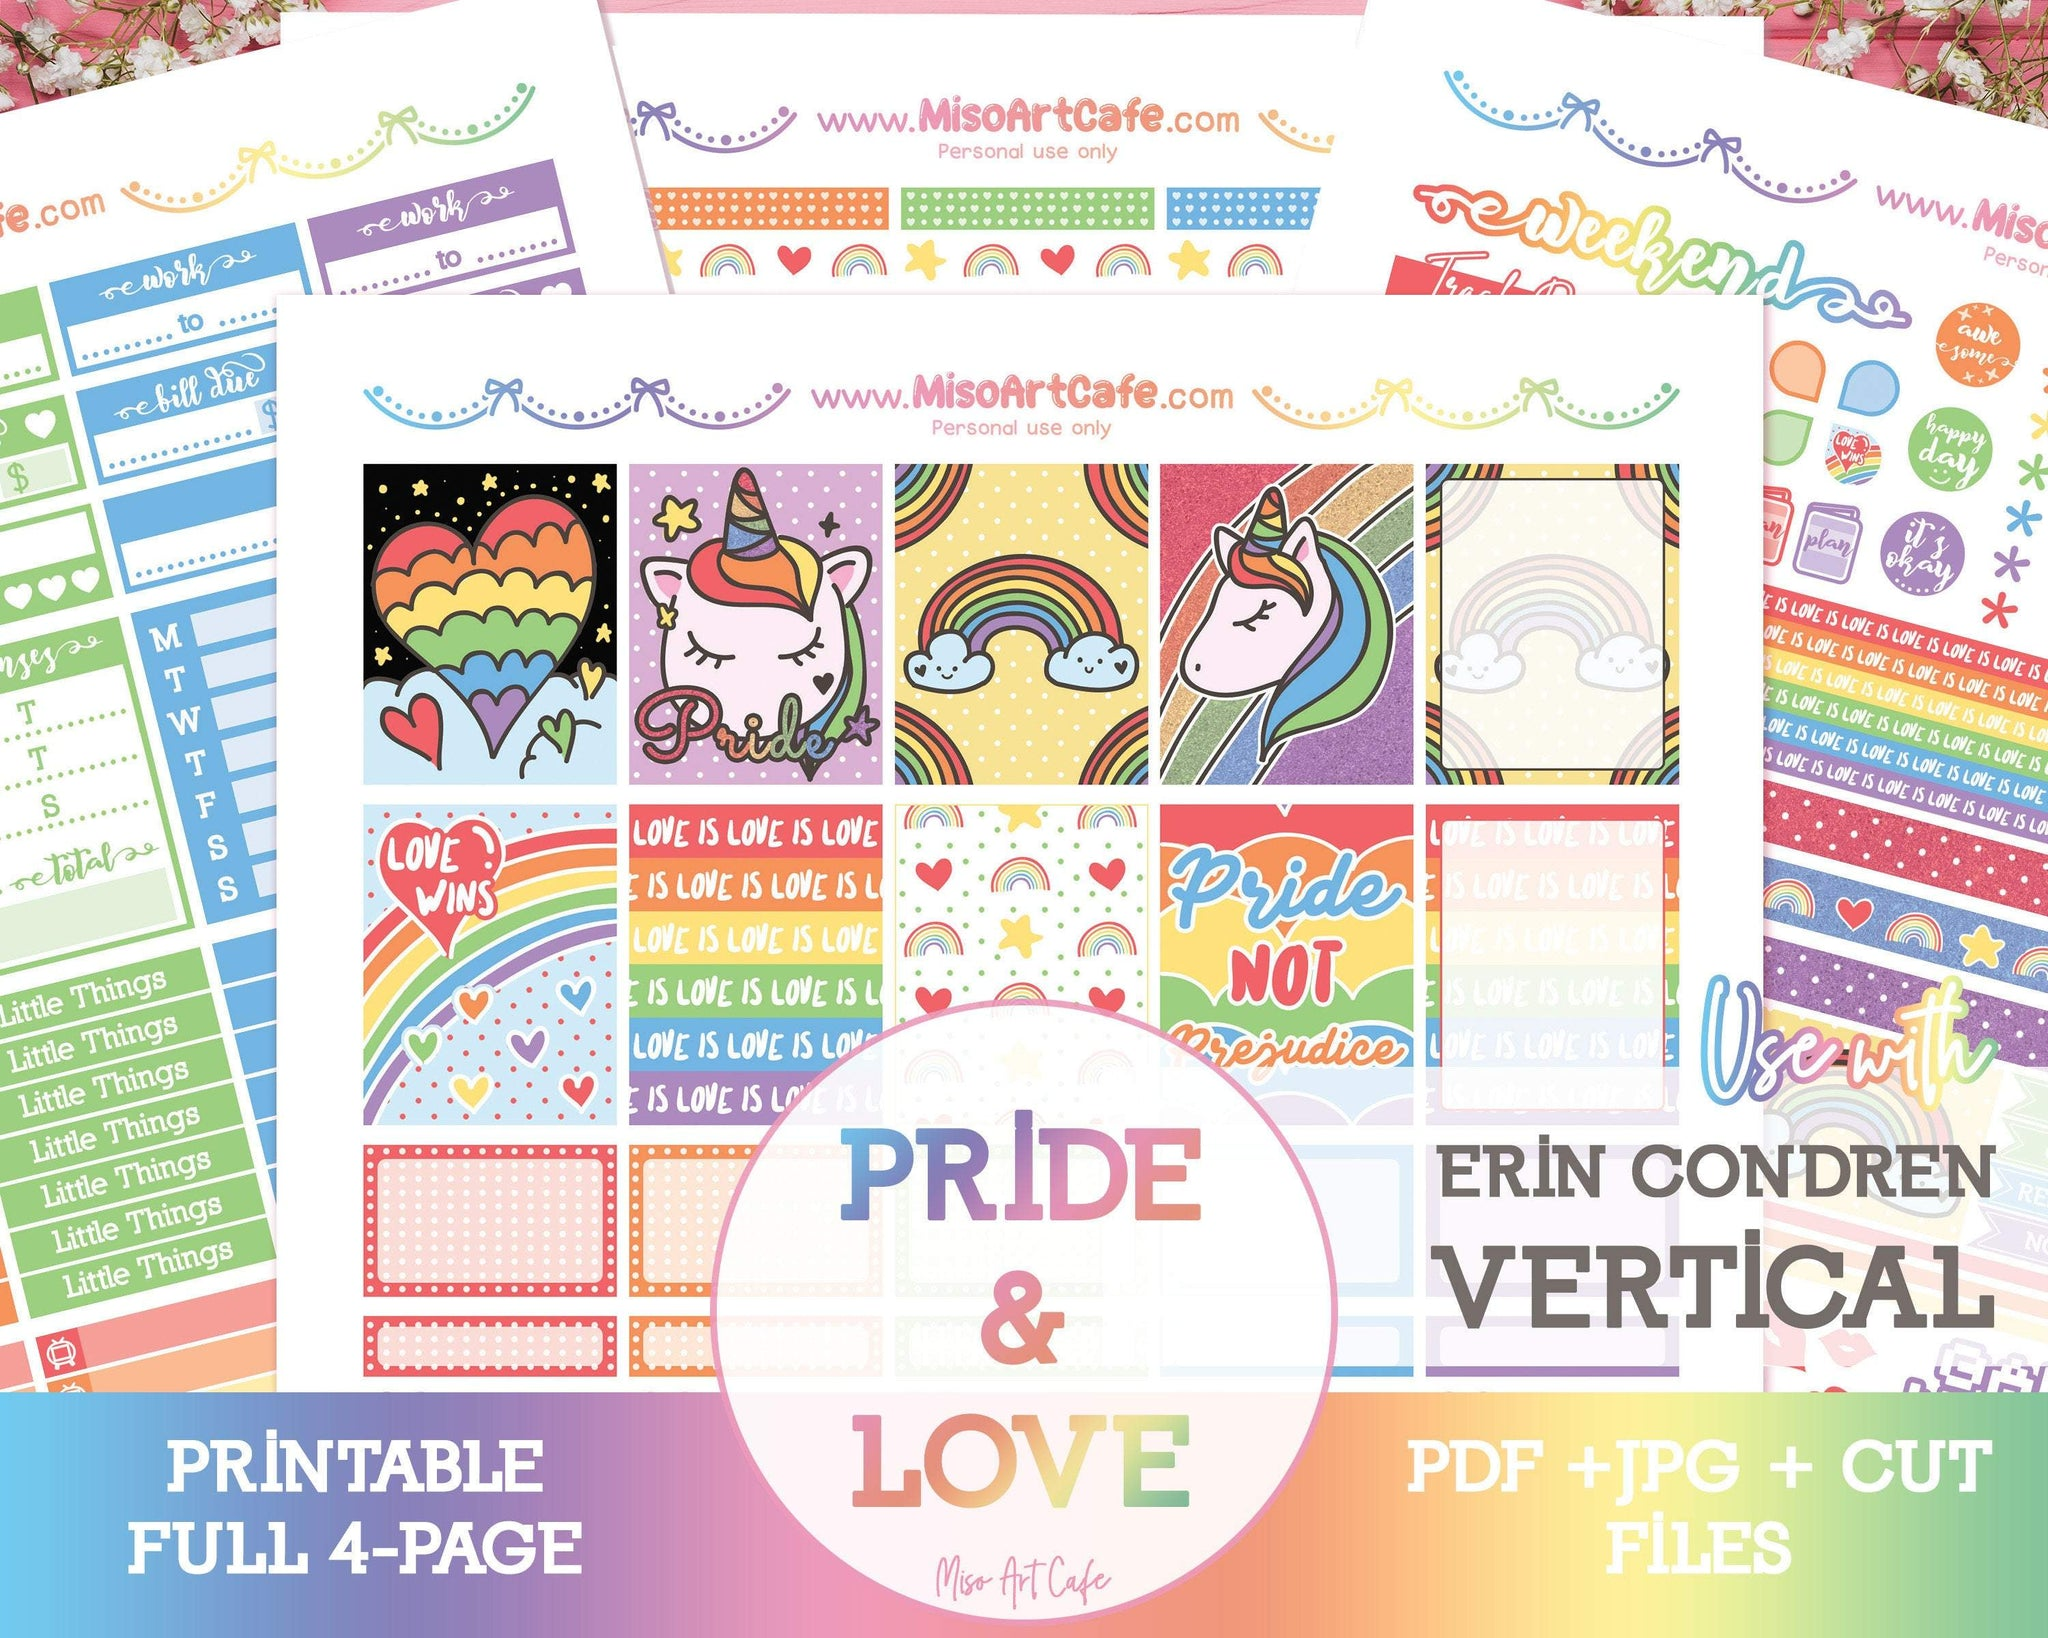 Printable Pride & Love Weekly Kit - Erin Condren Vertical - Miso Art Cafe